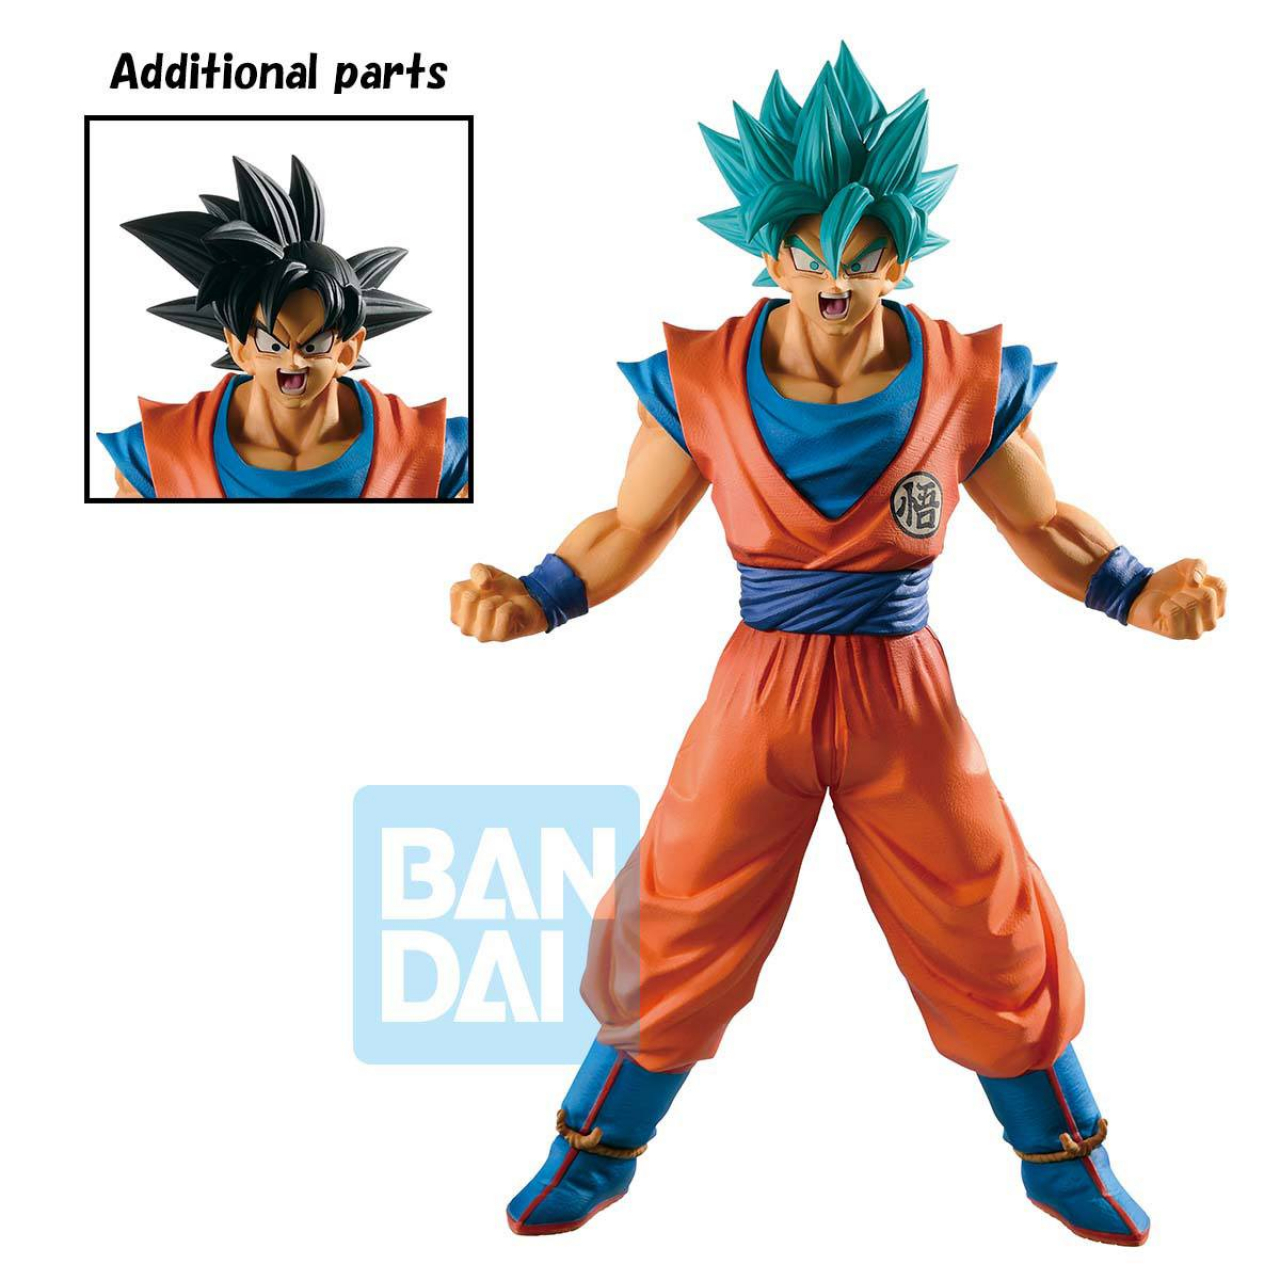 Dragon Ball Super Ichibansho PVC Statue Son Goku (History of Rivals) 25 cm